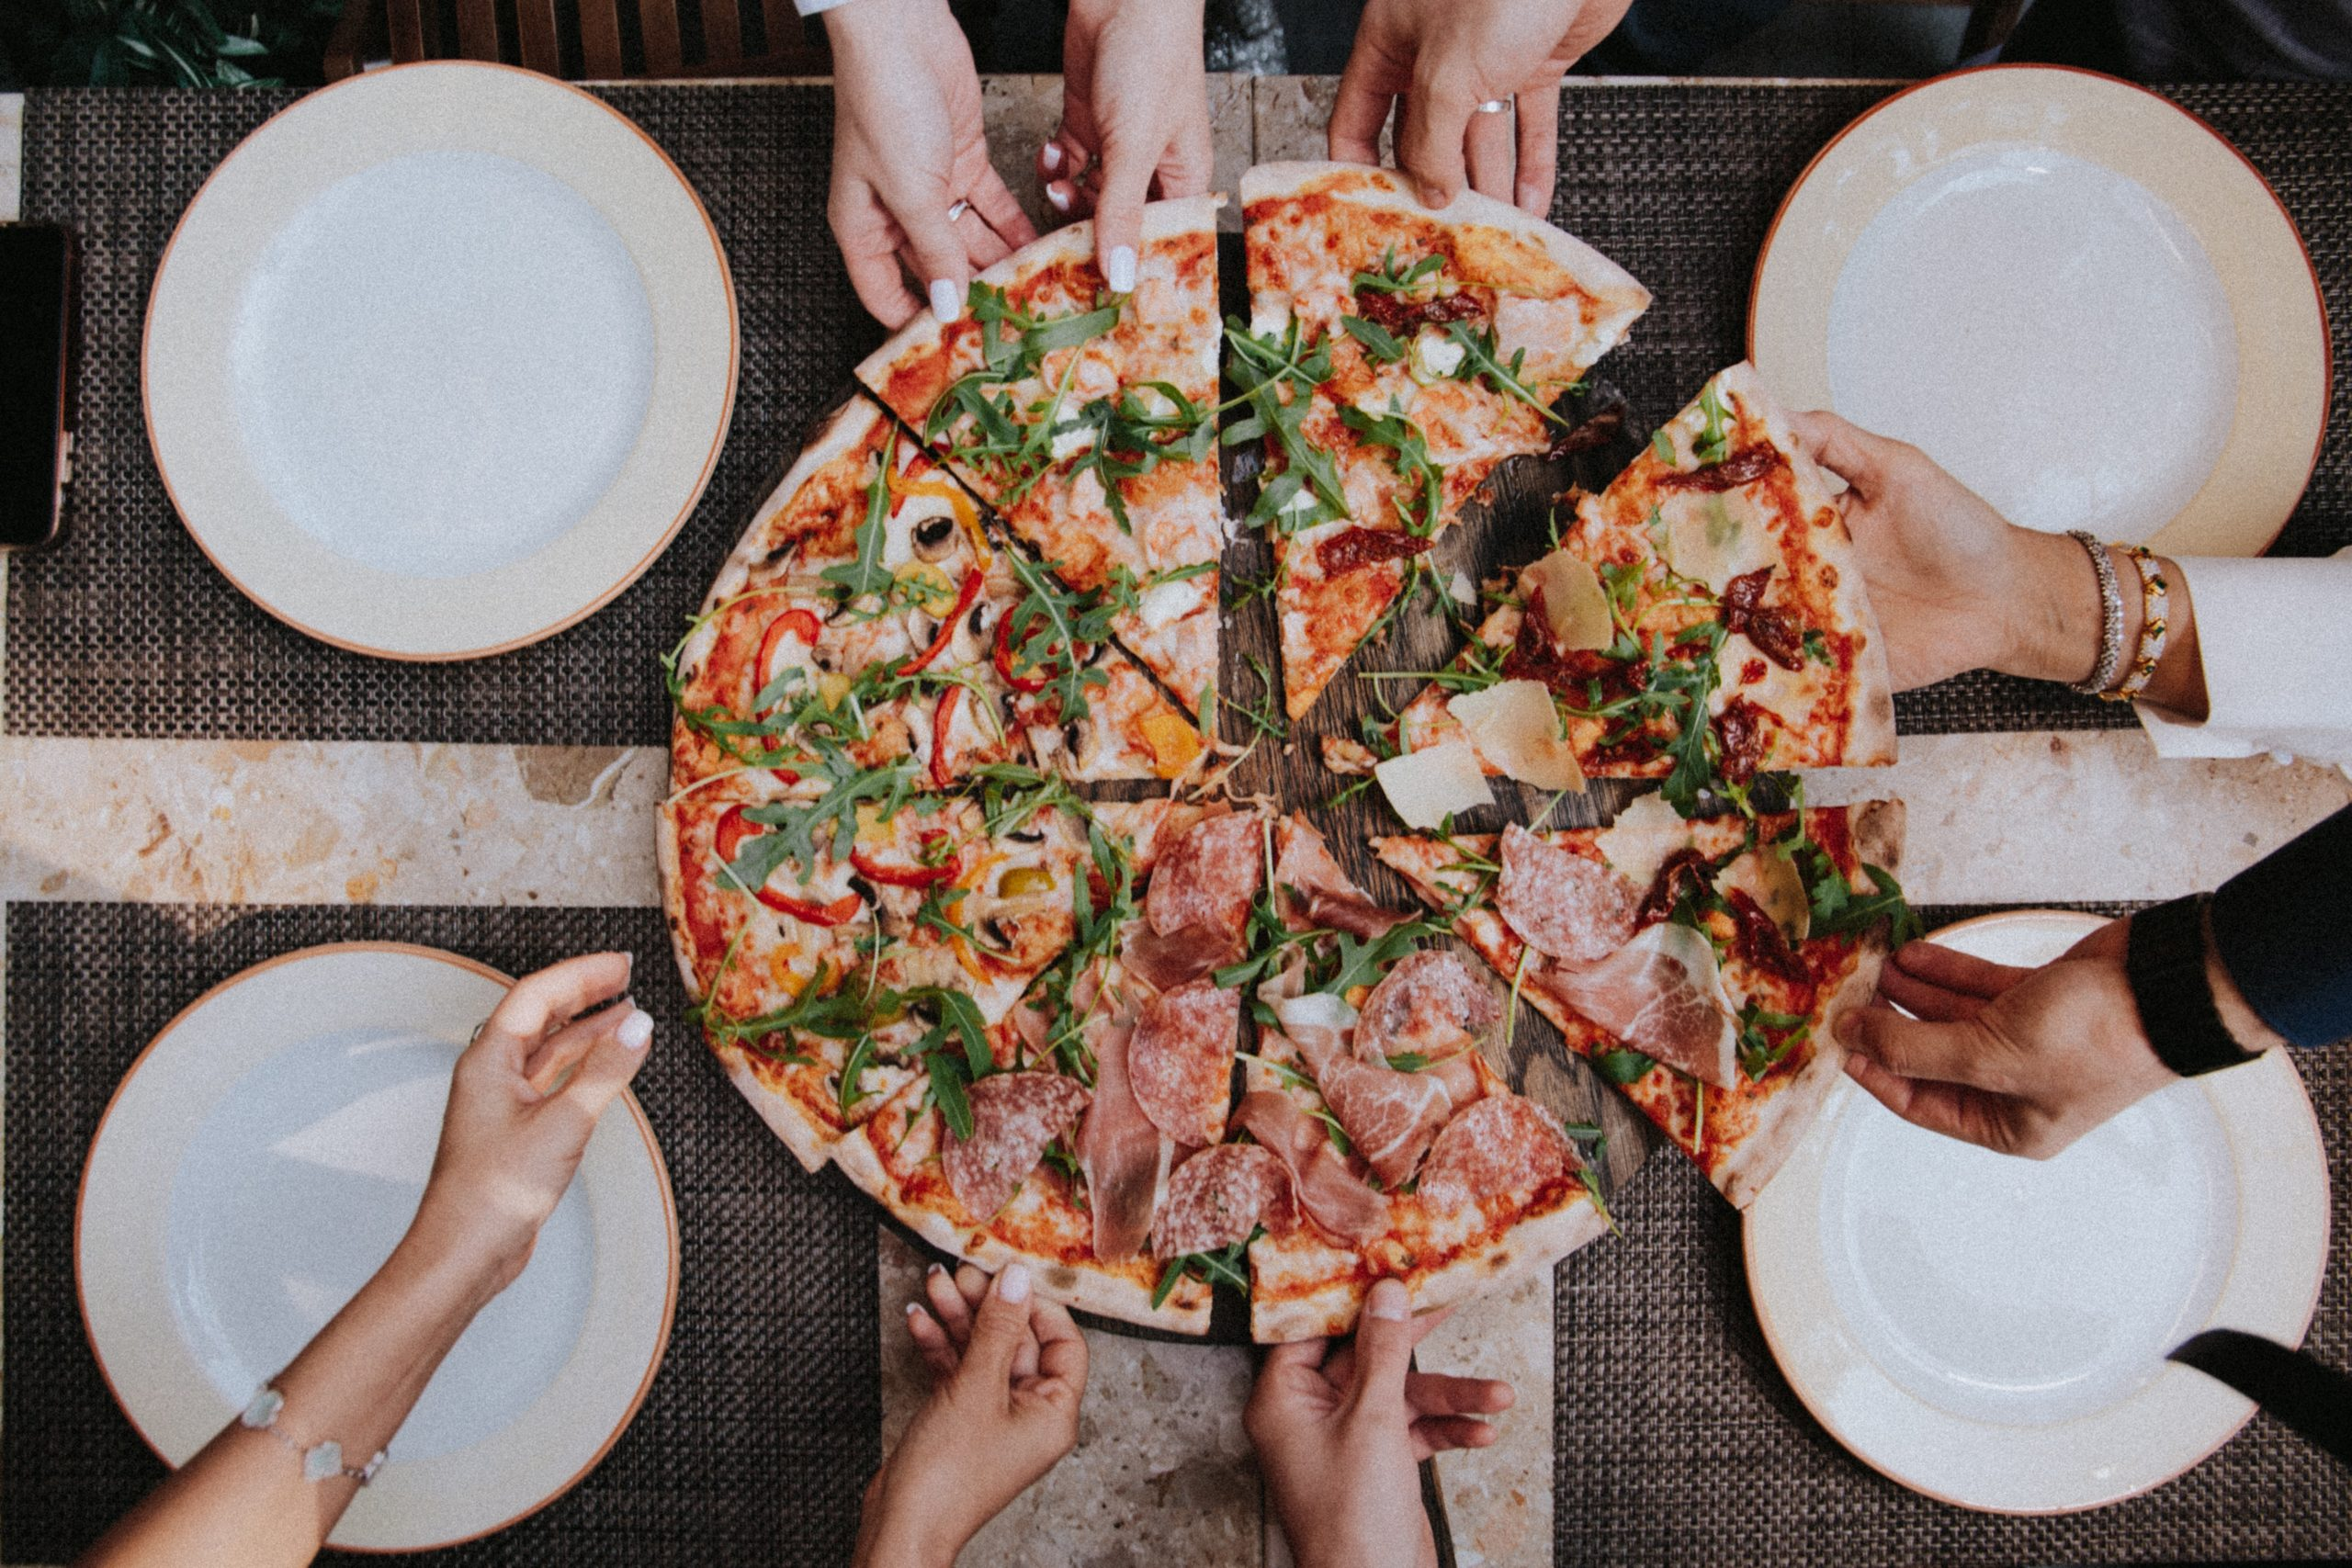 Food Culture Intersections with Mental Wellbeing